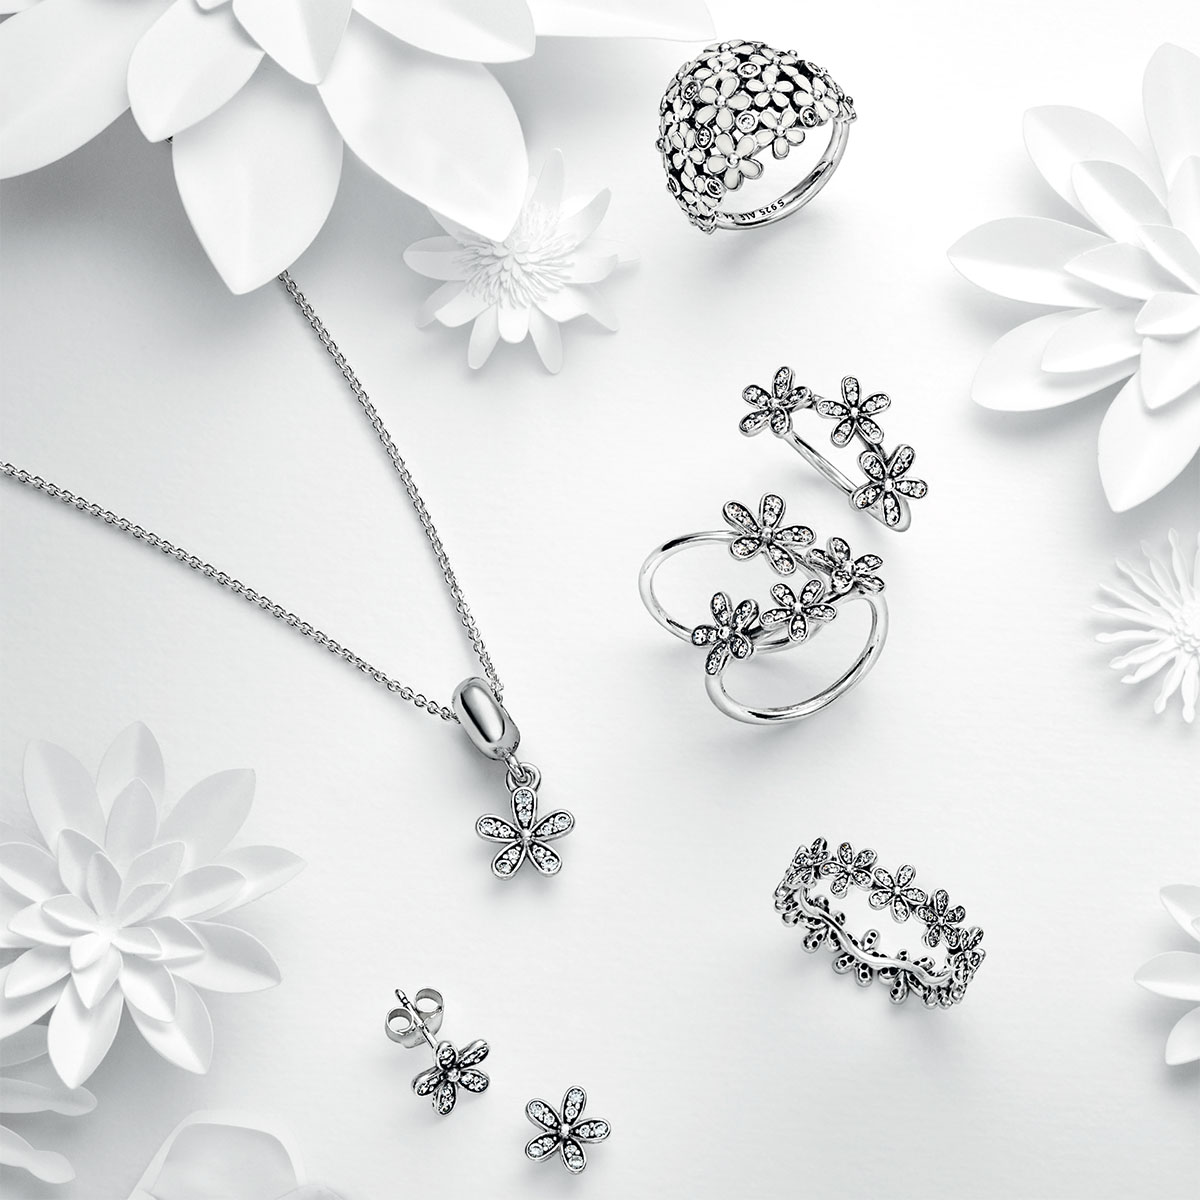 83bed714b PANDORA Dazzling Daisy with Clear CZ Ring - Pancharmbracelets.com